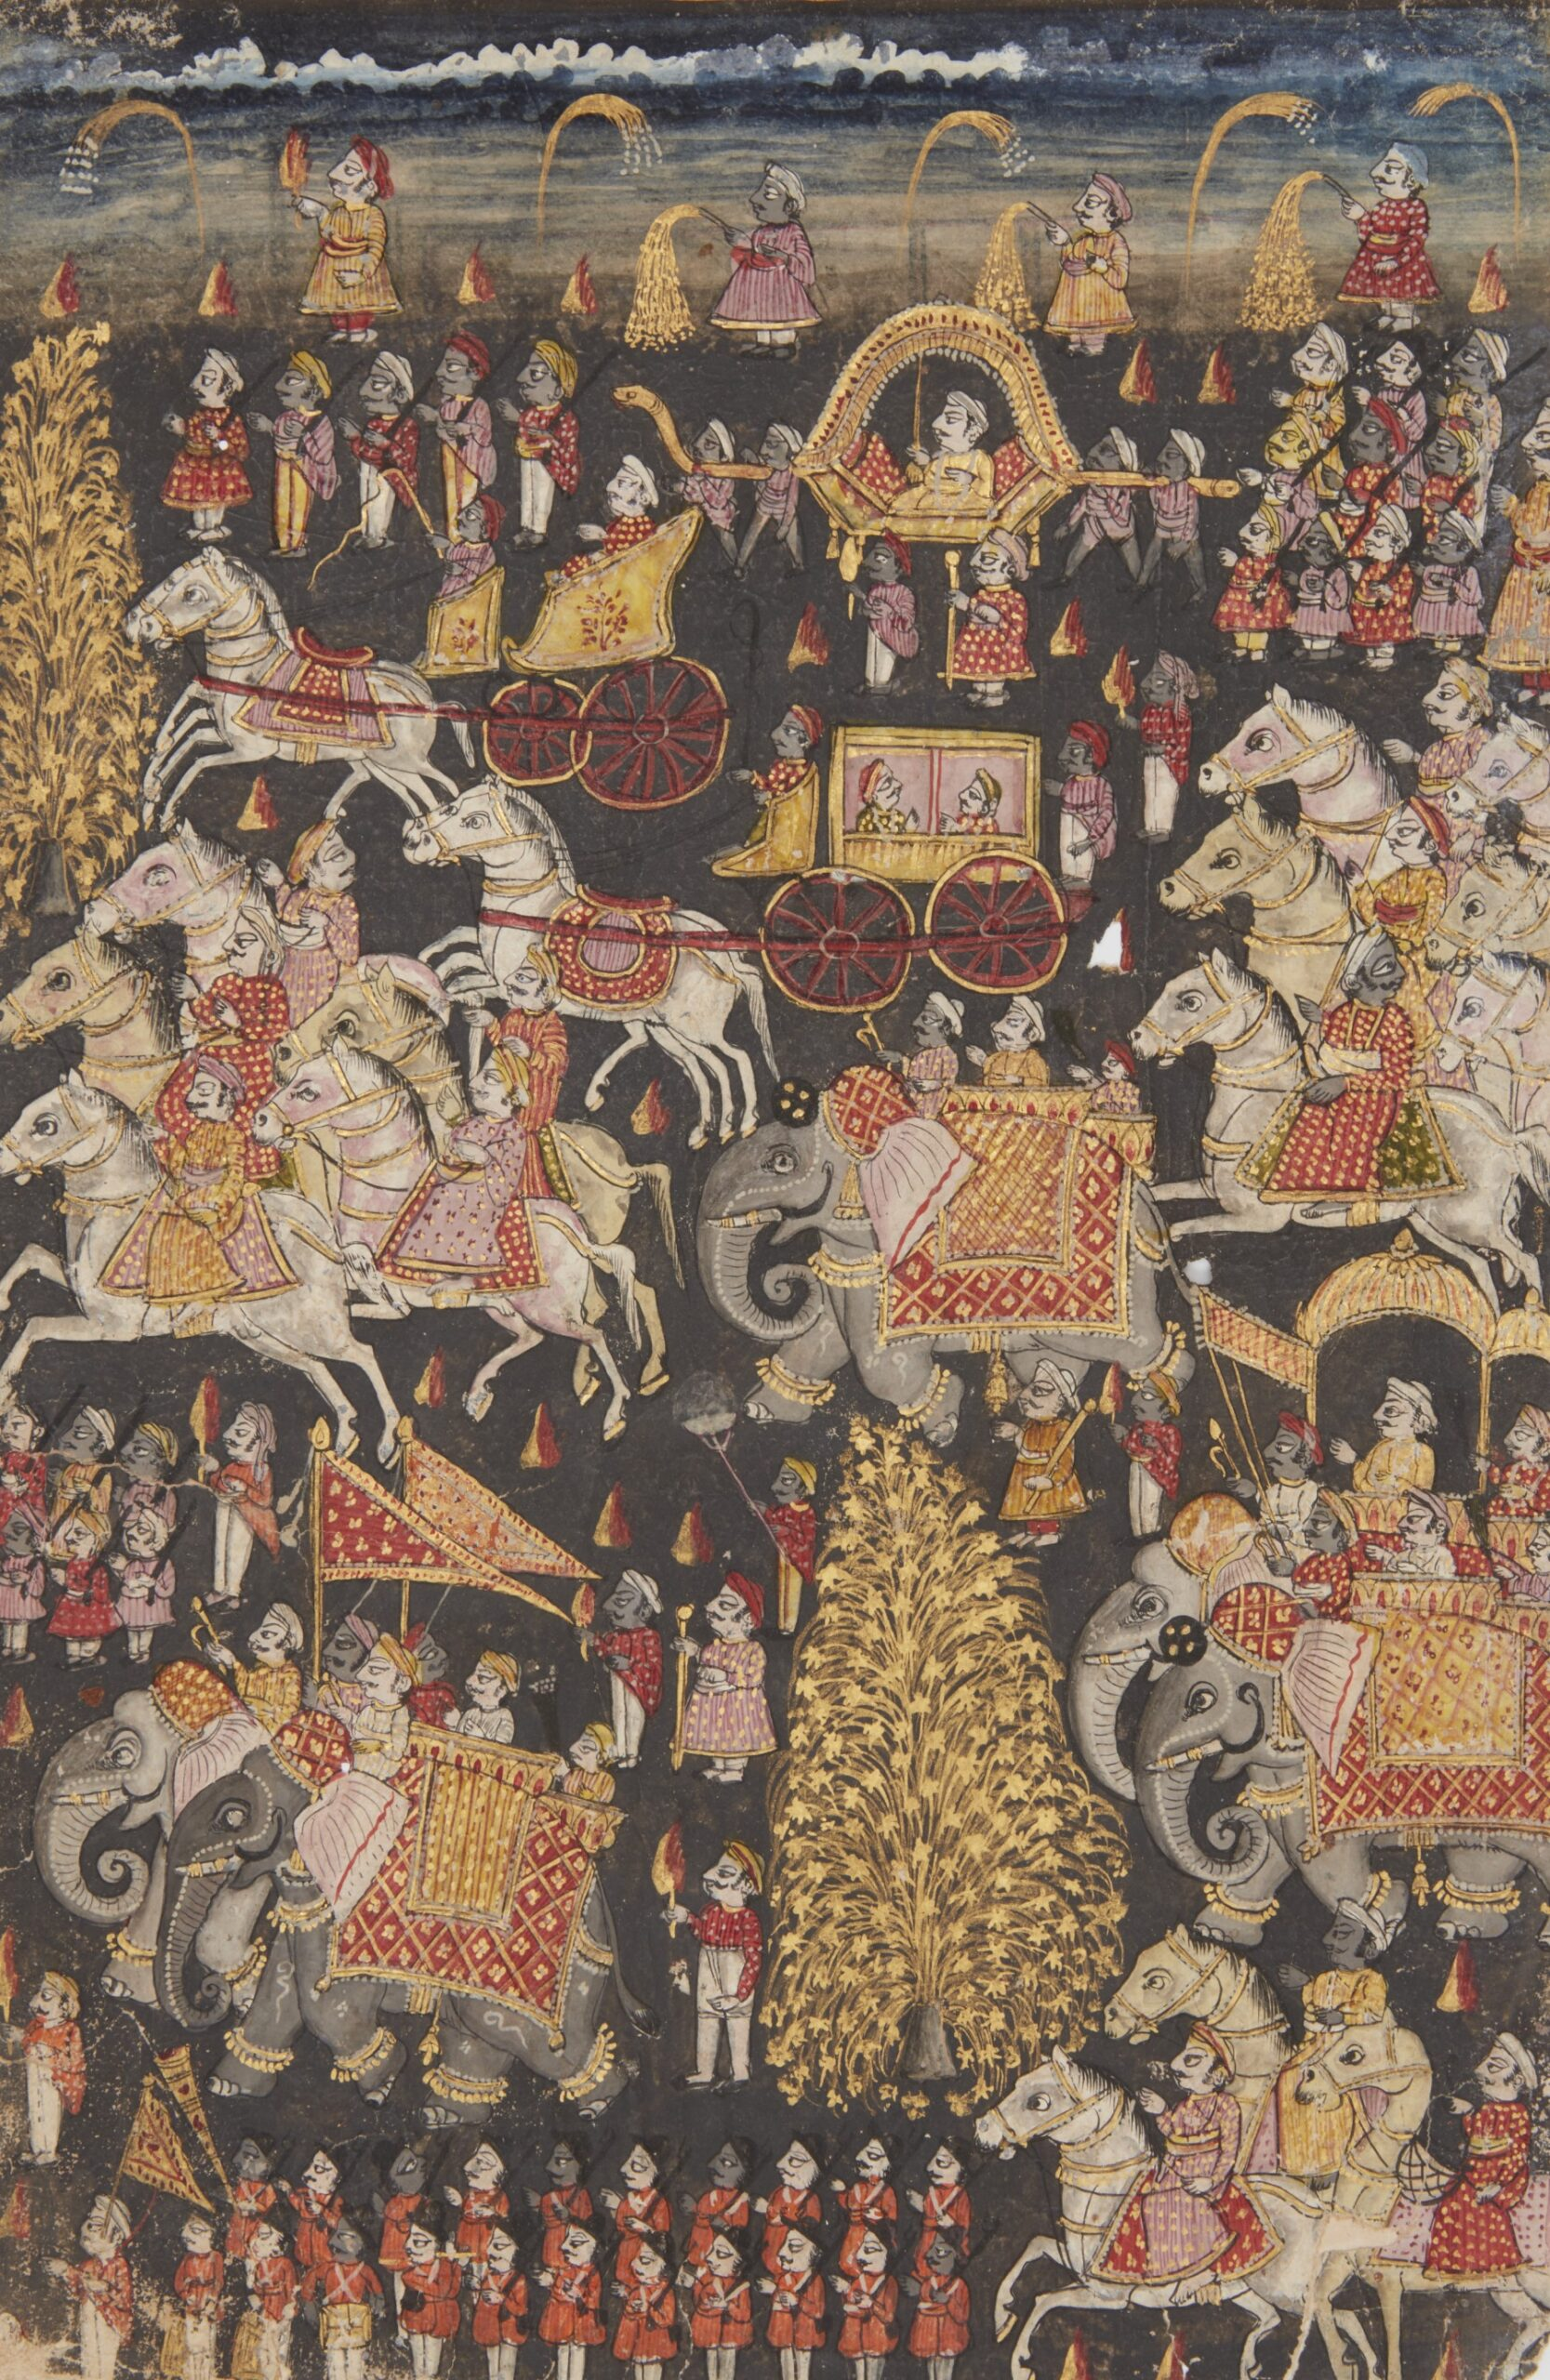 produced for the Nawab of Sachin Ibrahim Muhammed Yakut Khan I Bahadur (r. 1802 - 1853AD), Sachin, South India, first half of the 19th century, with 29 illustrations, 26.4 x 19.2cm, £8,000-£12,000